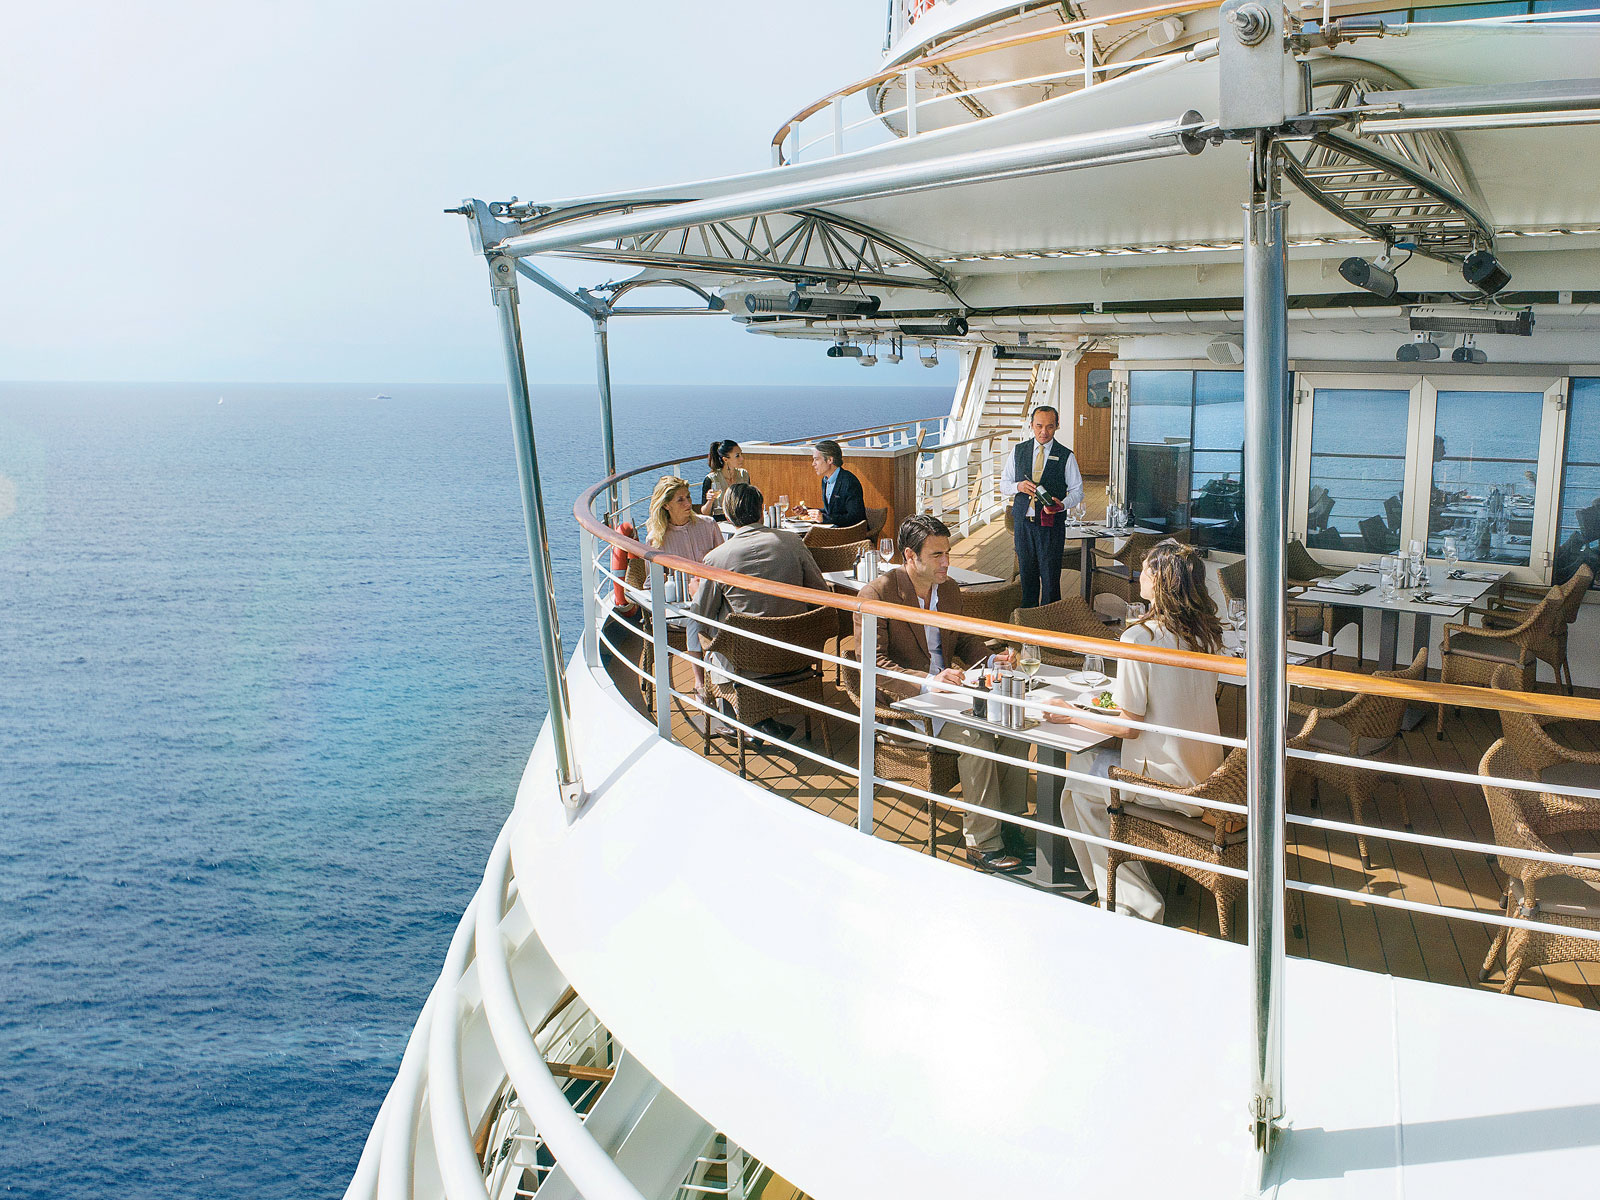 cruise-culinary-guide-silver-muse-silversea-FT-MAG0119.jpg